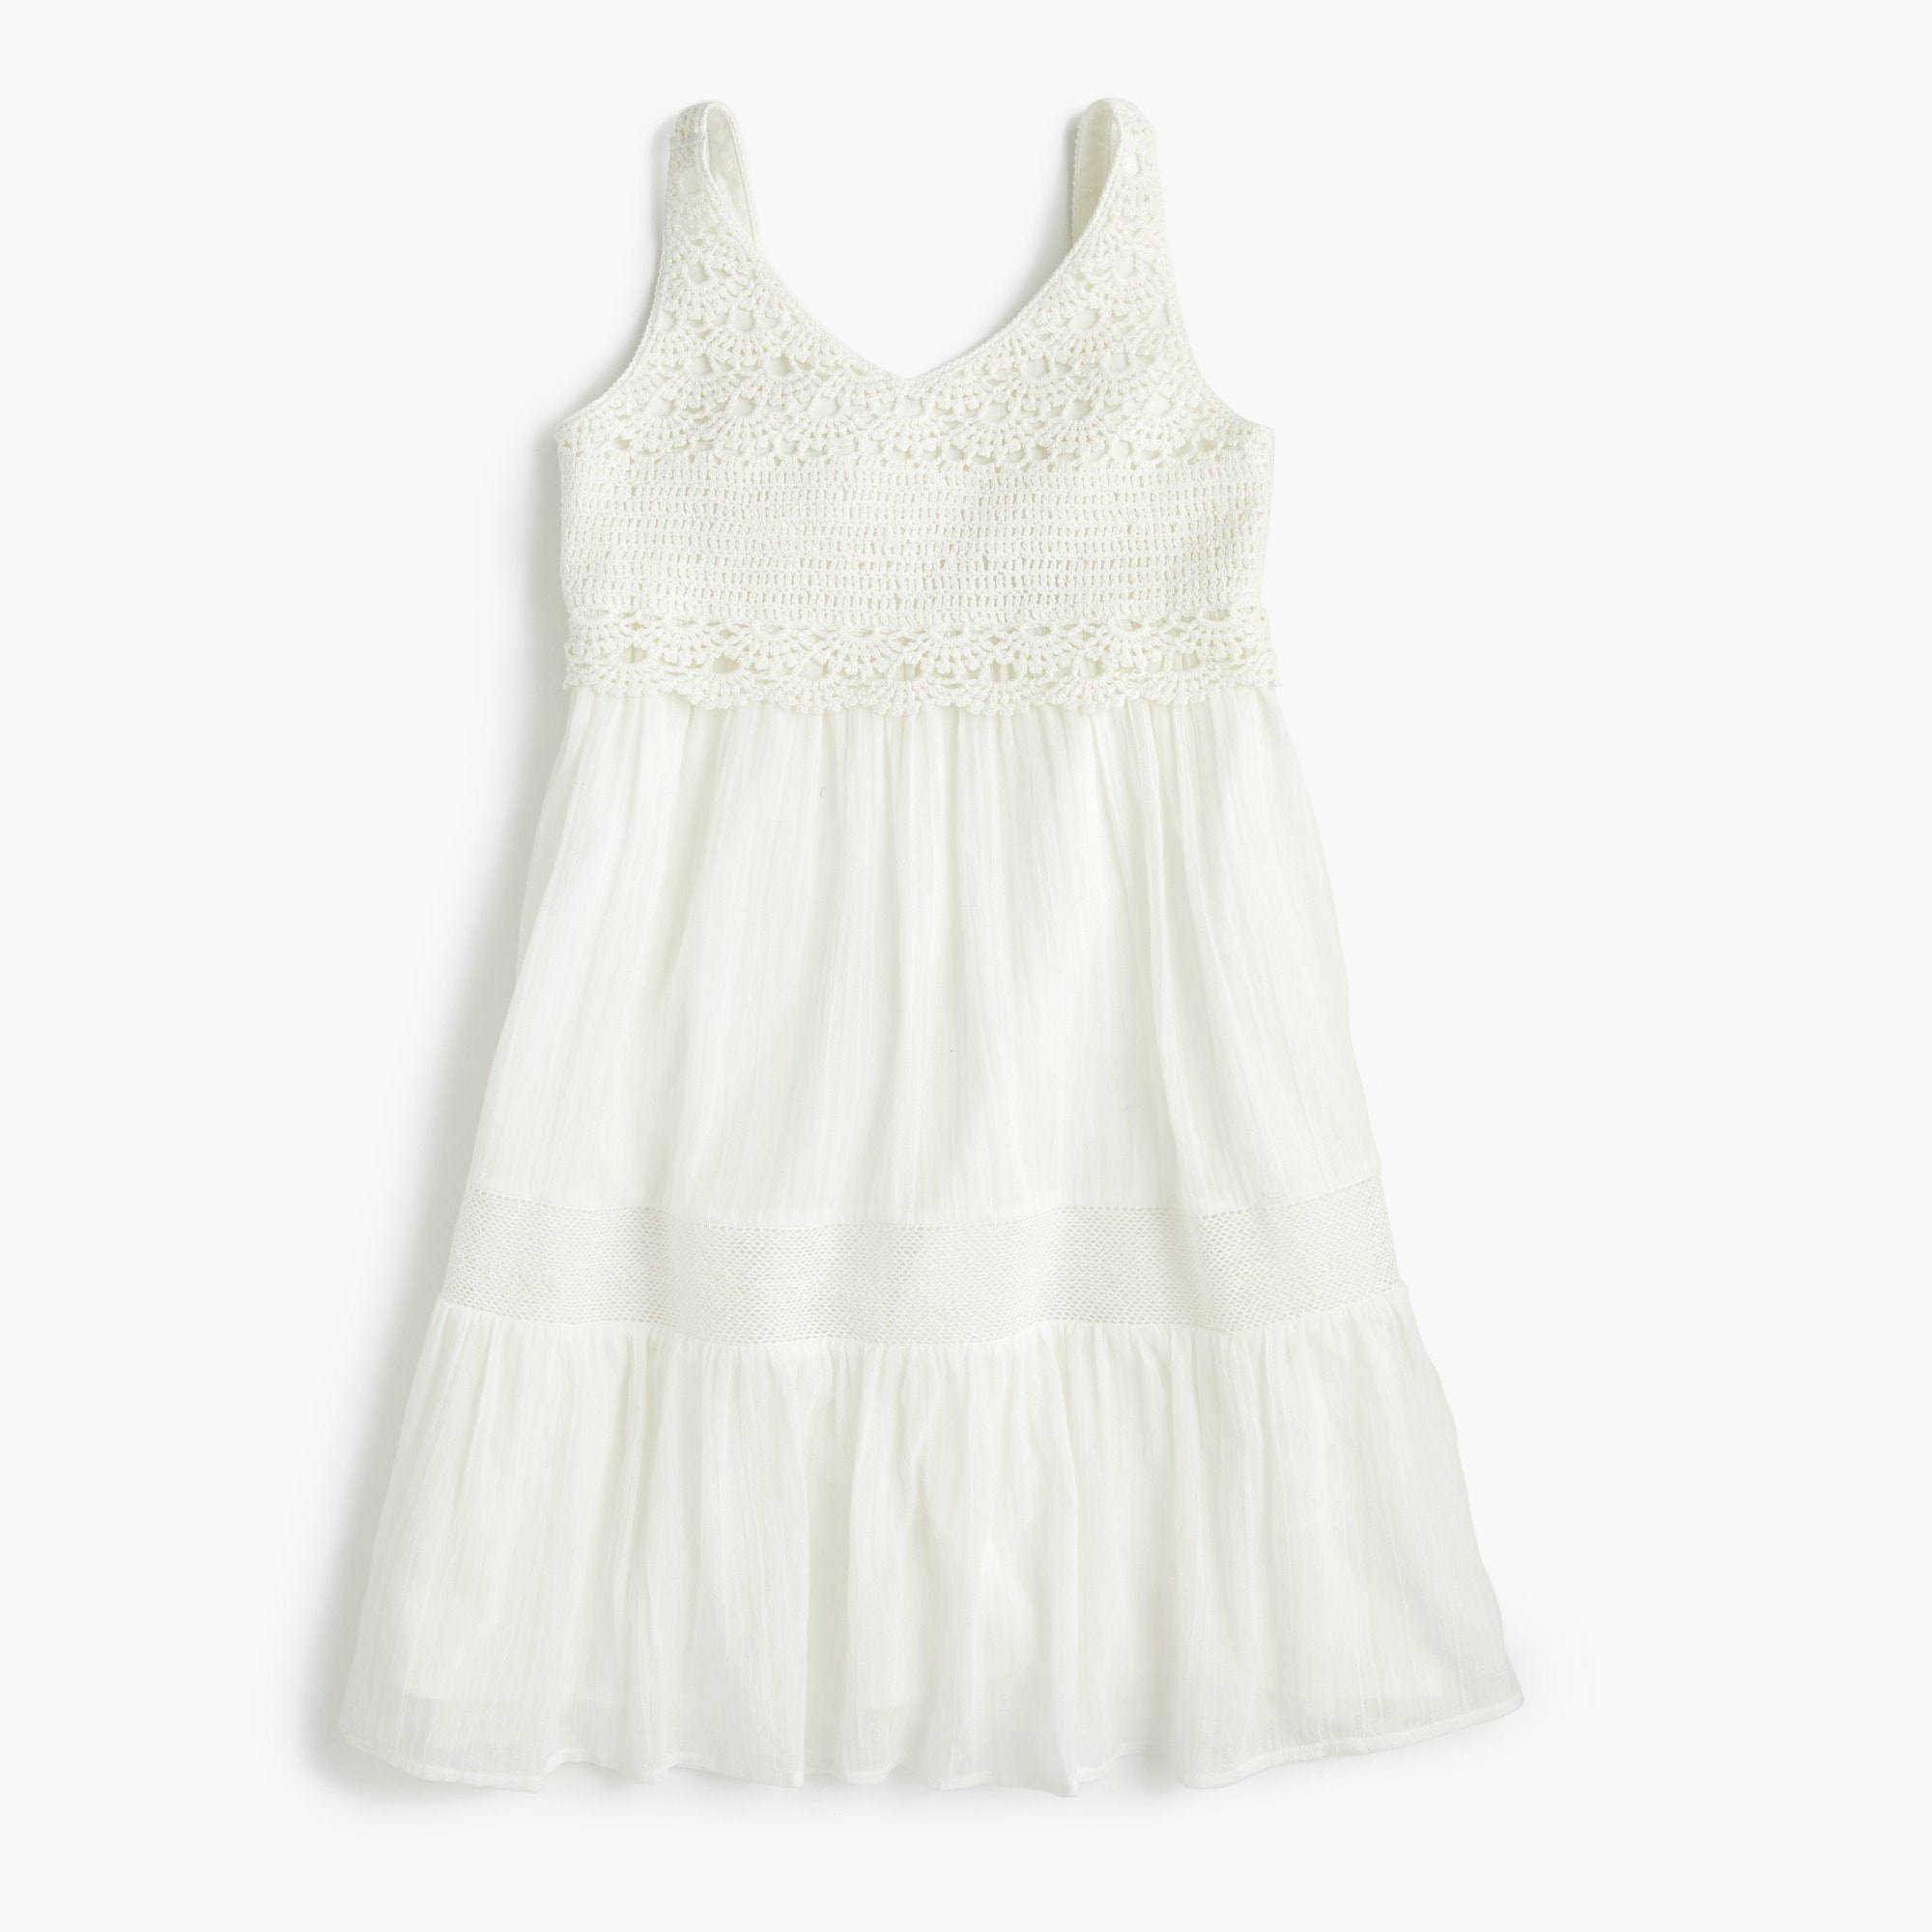 girls Girls' crochet dress